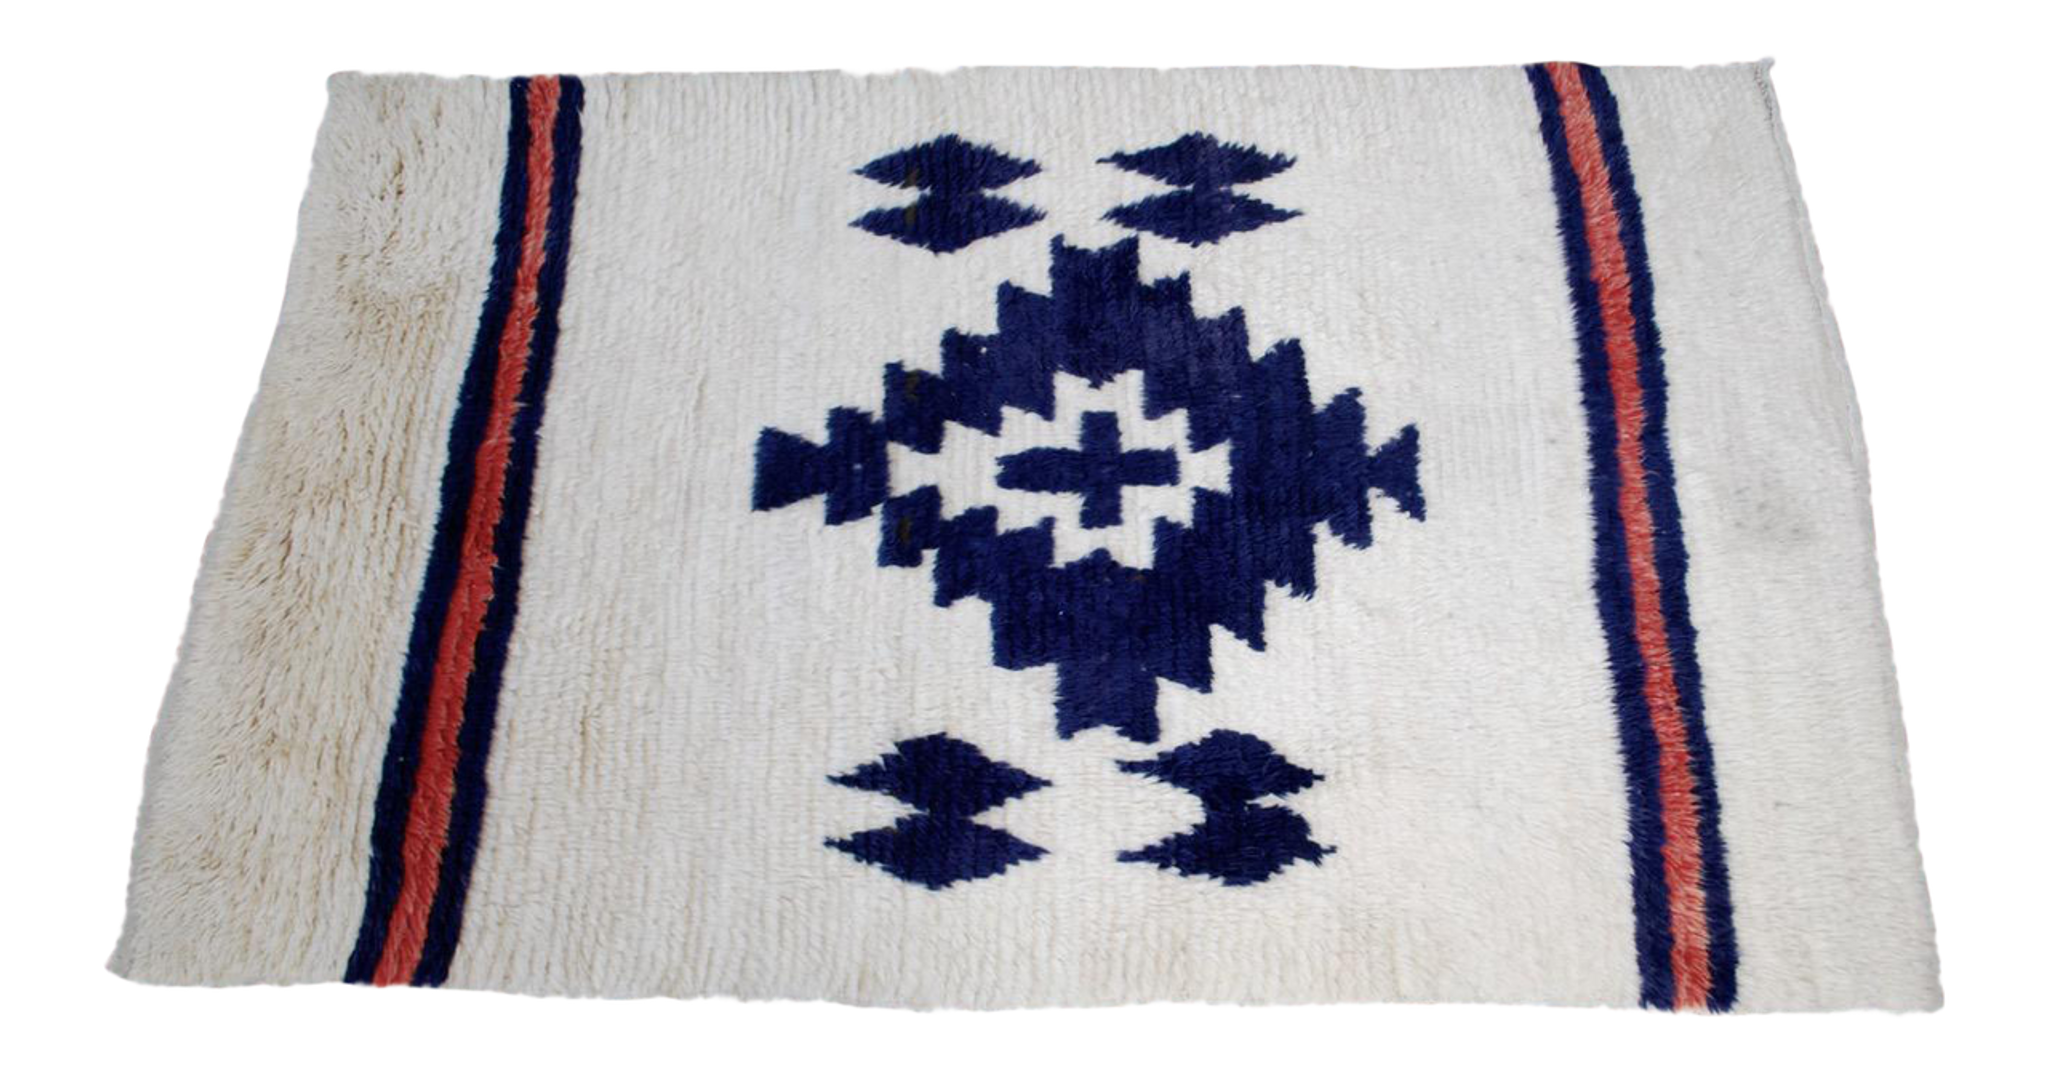 nomadic authentic babak pakistani nomad carpets handmade tribal s products carpet knotted oriental rug bokhara hand